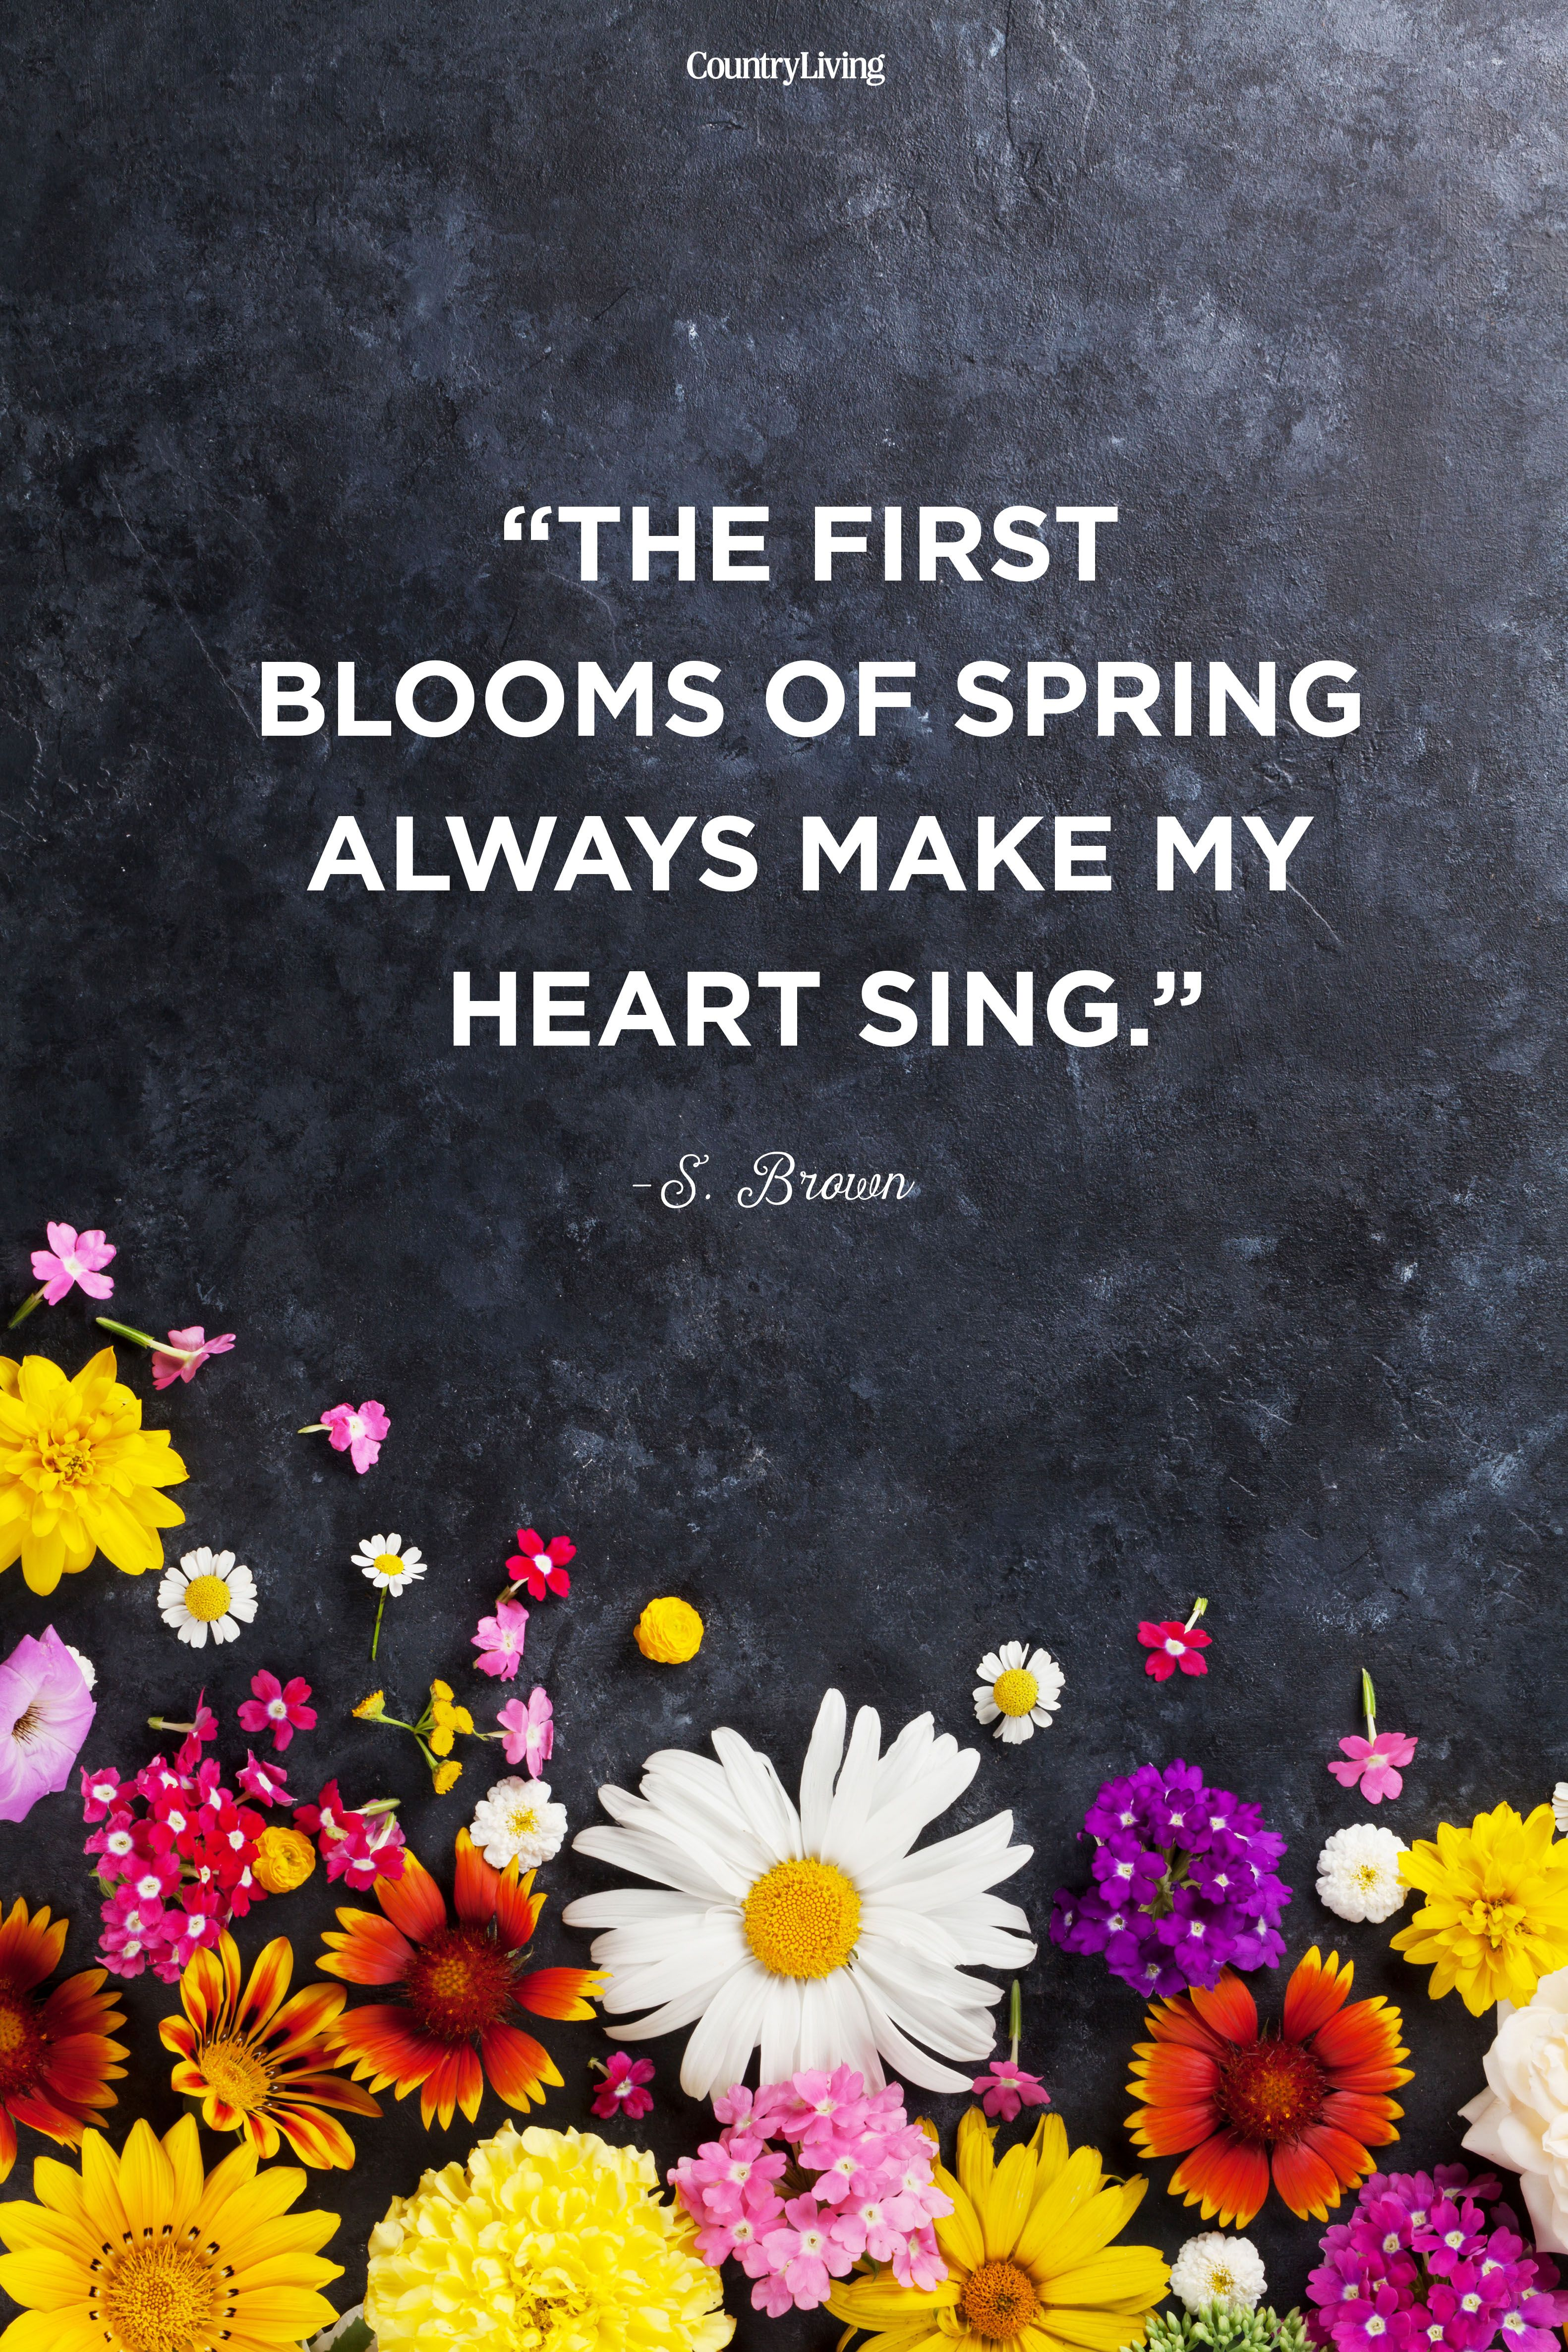 25 Happy Spring Quotes - Motivational Sayings About Spring